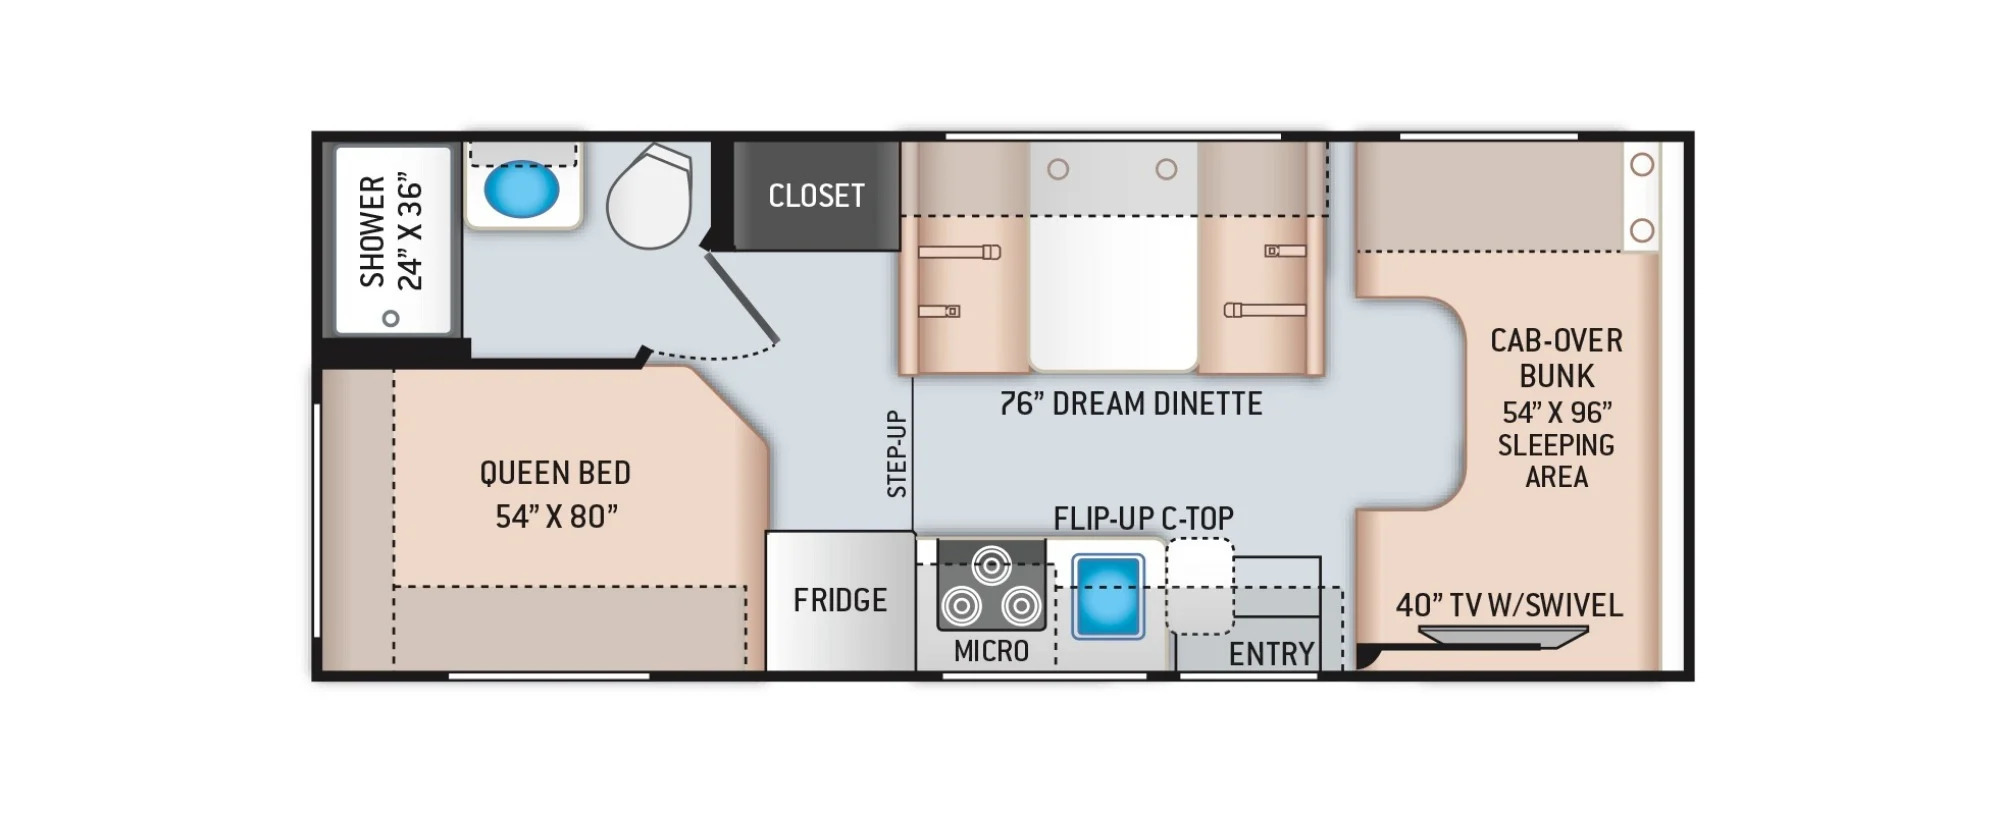 View Floor Plan for 2022 THOR FREEDOM ELITE 22HE